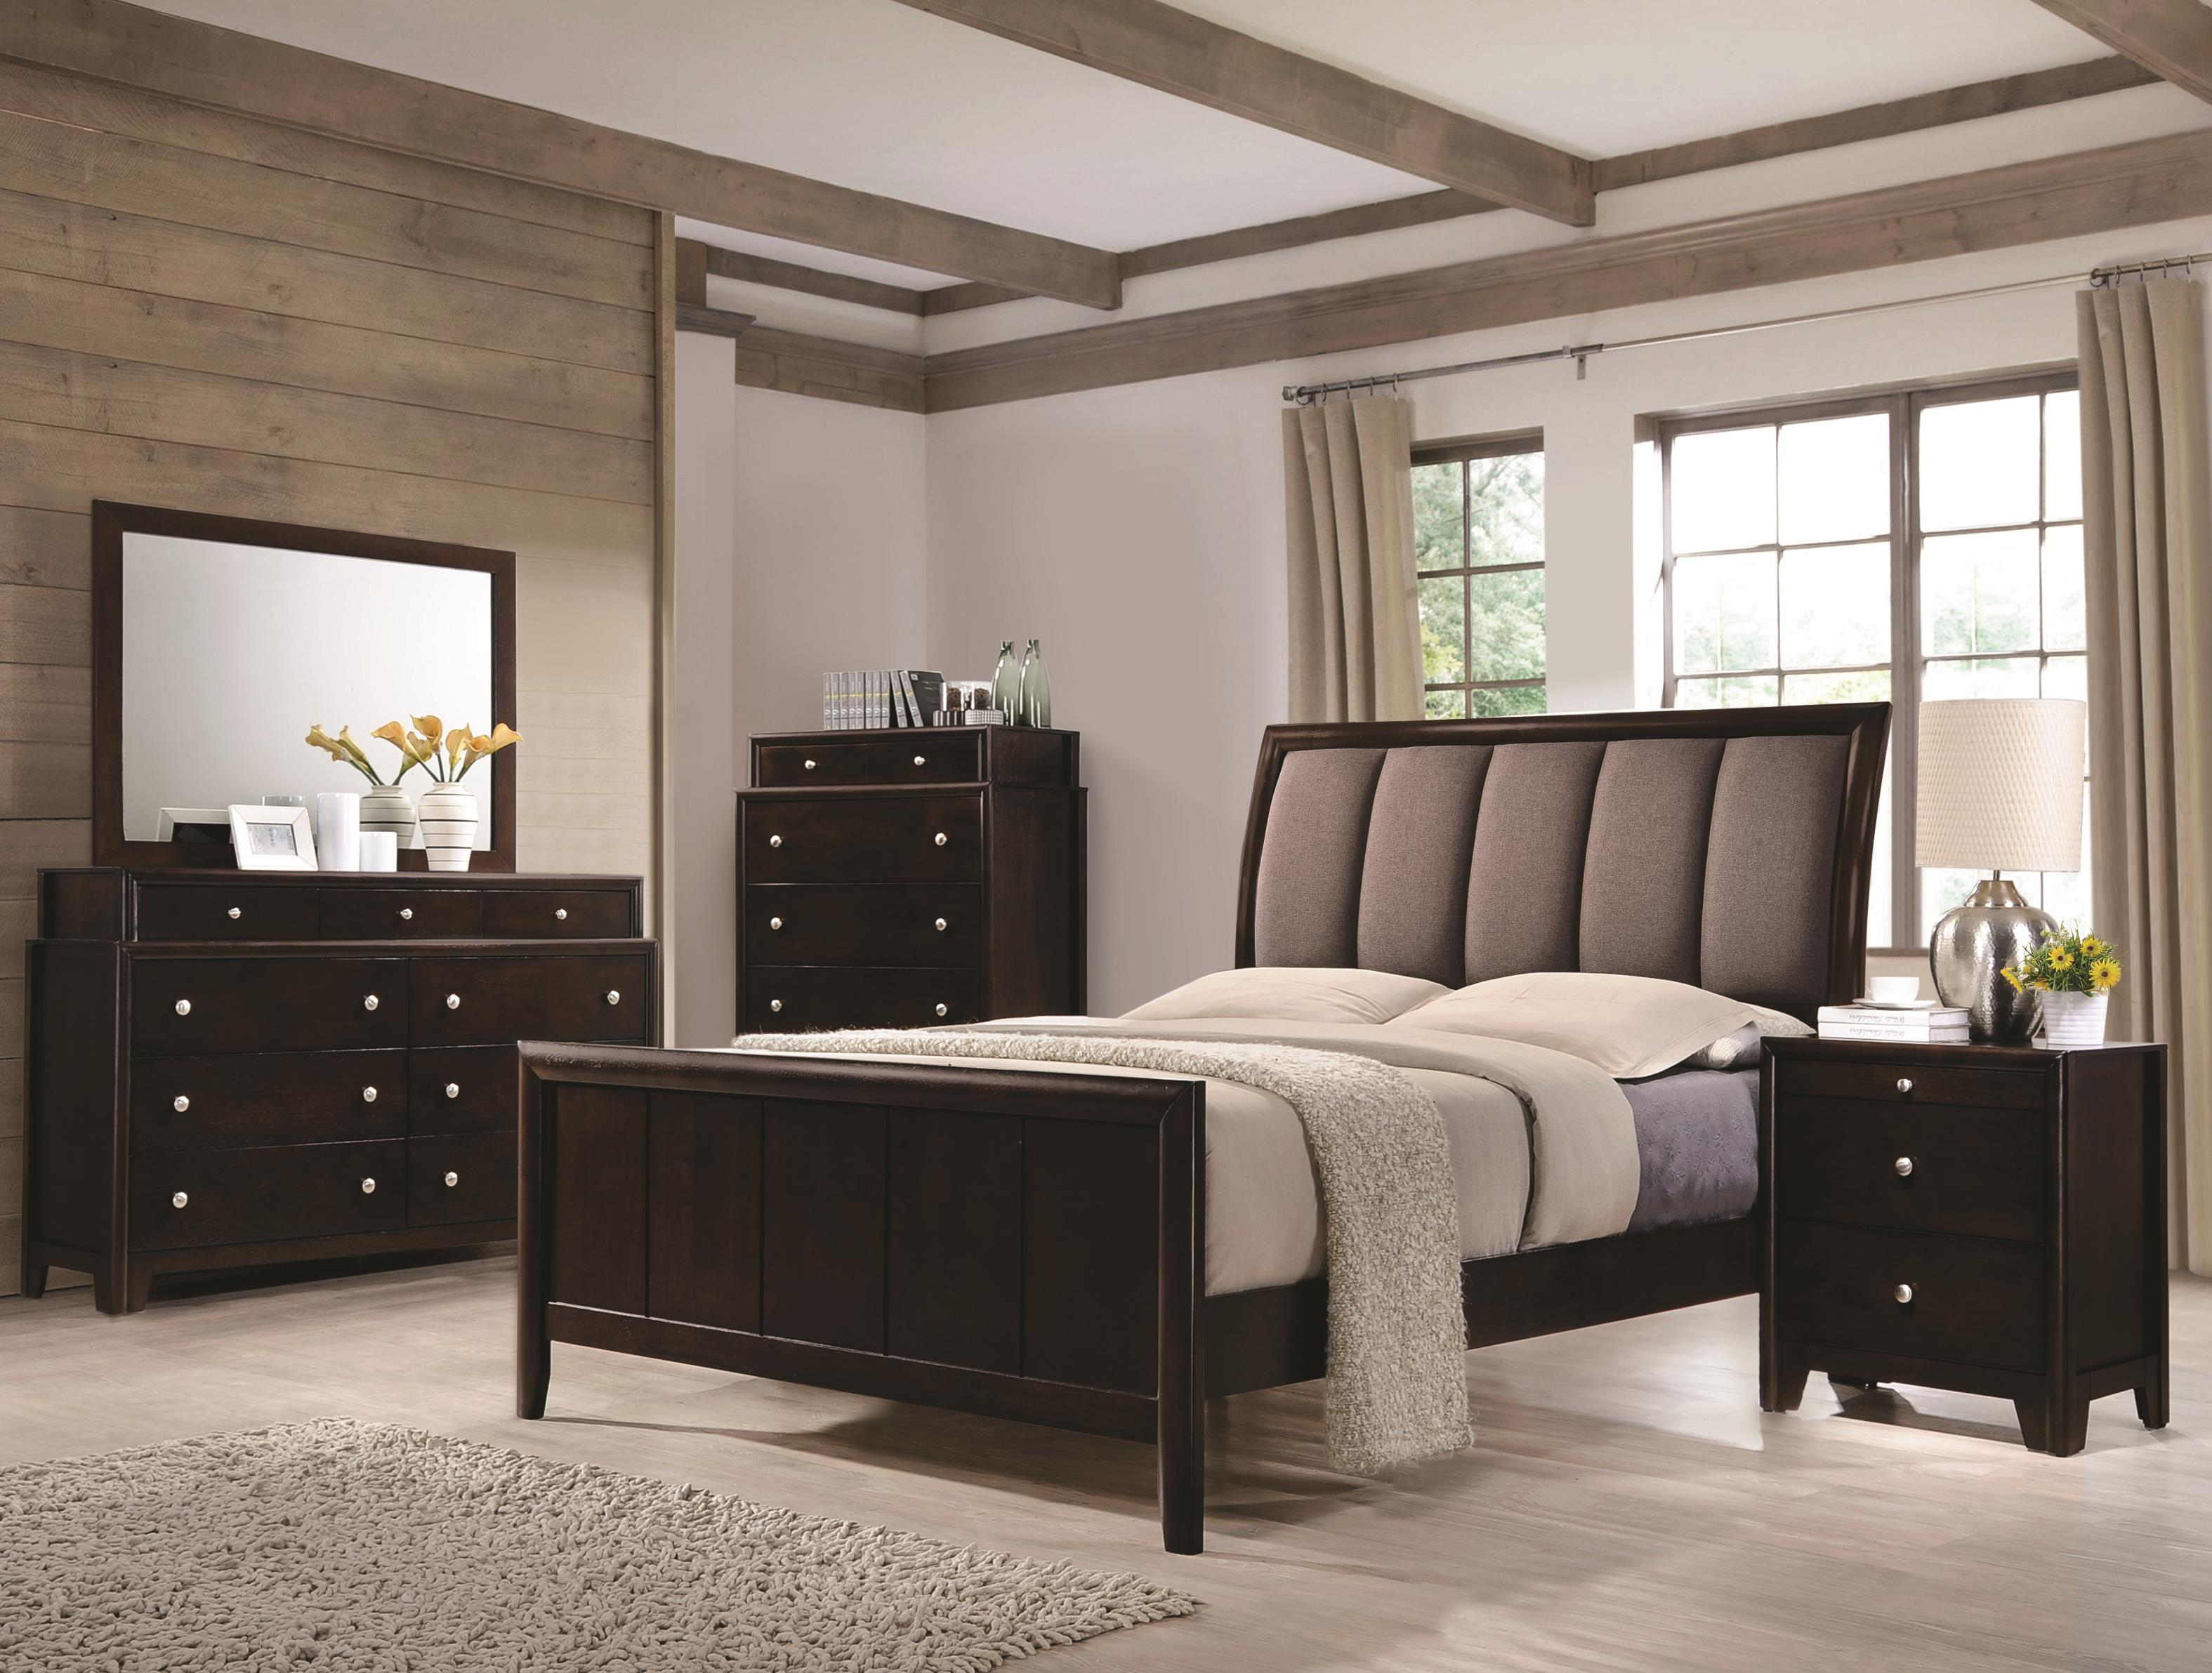 Coaster Madison Queen Bedroom Group - Item Number: 20488 Q Bedroom Group